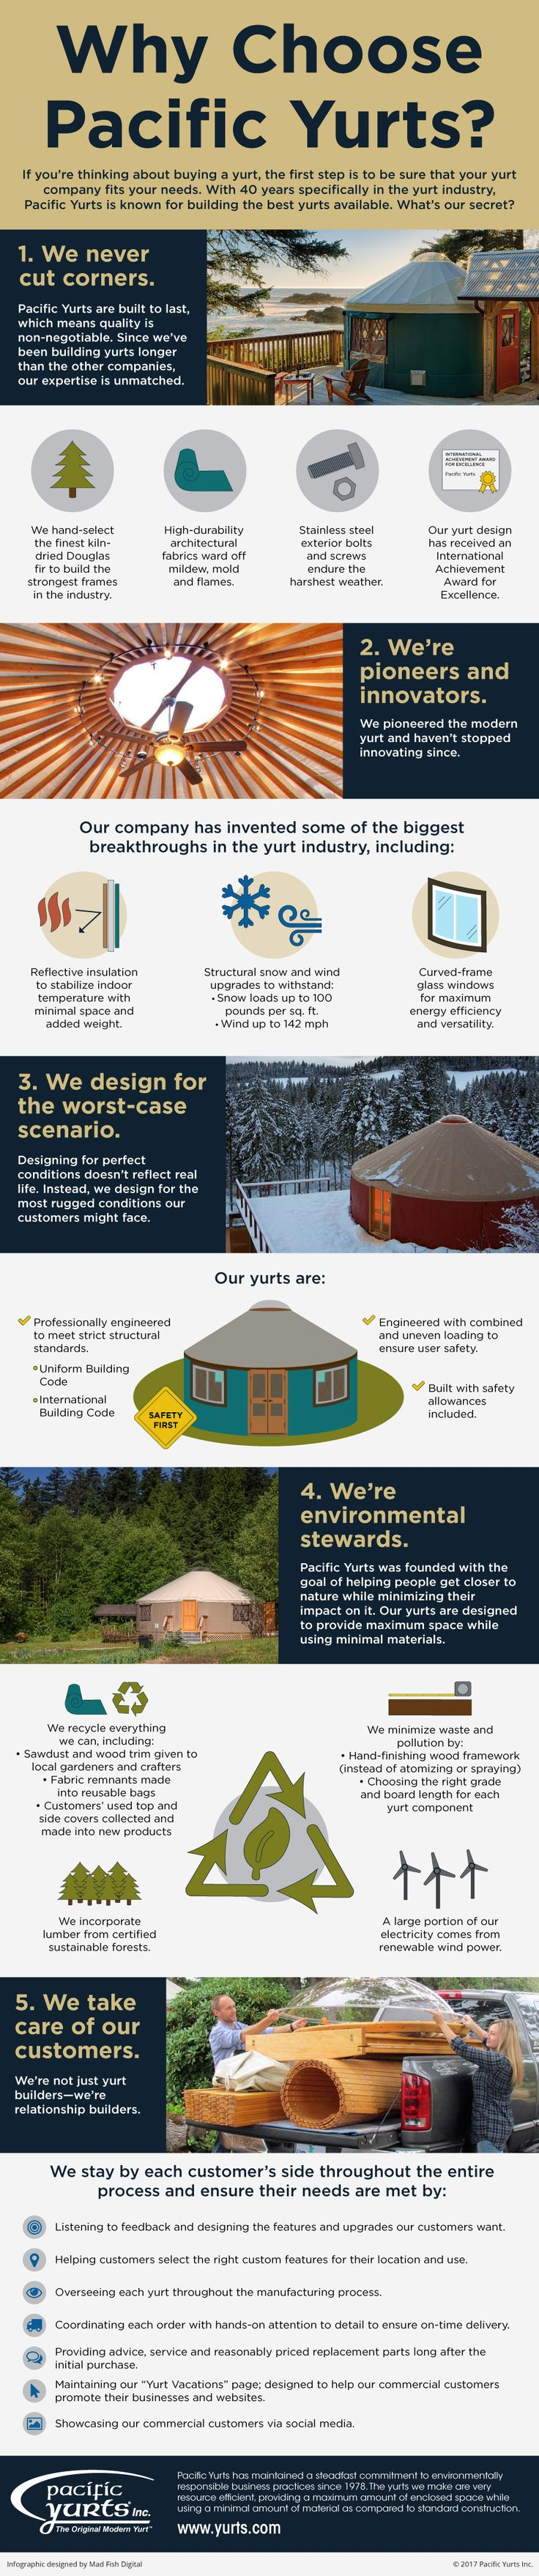 Why Choose Pacific Yurts? Download our infographic to learn more.